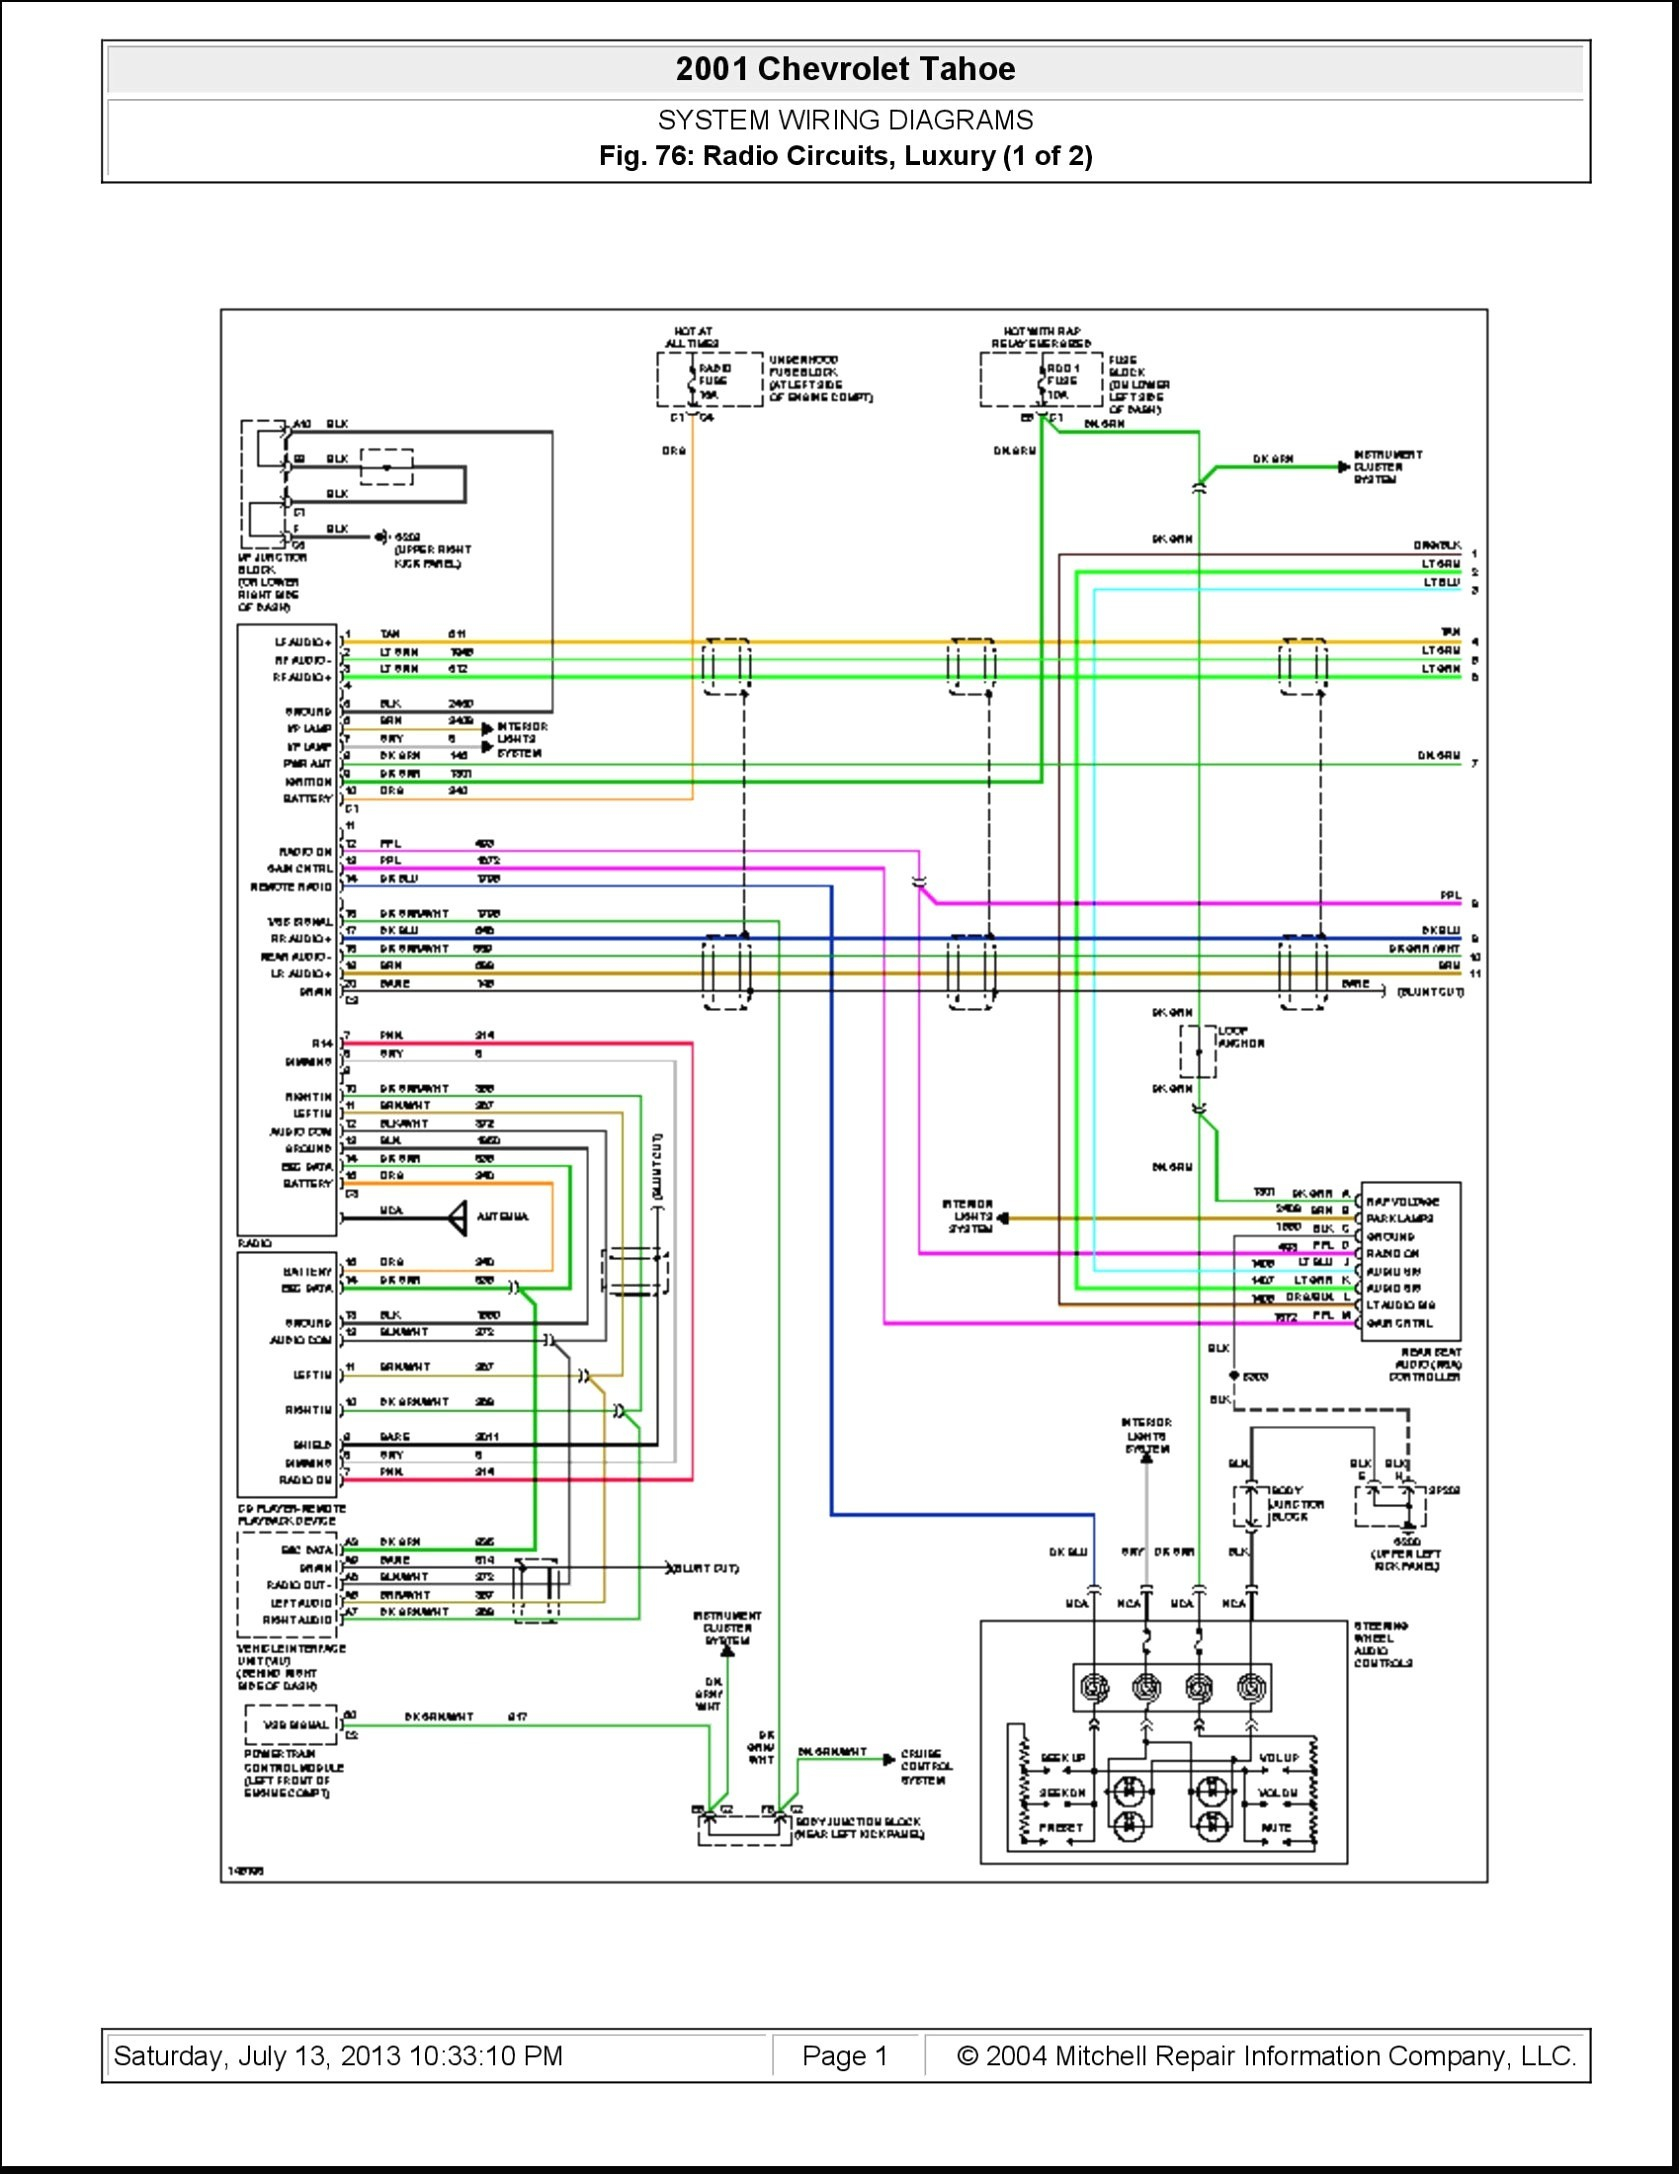 2004 Tahoe Radio Wiring Archive Of Automotive Diagram Mallory Ignition Magneto 2002 Chevy Sample Rh Faceitsalon Com Z71